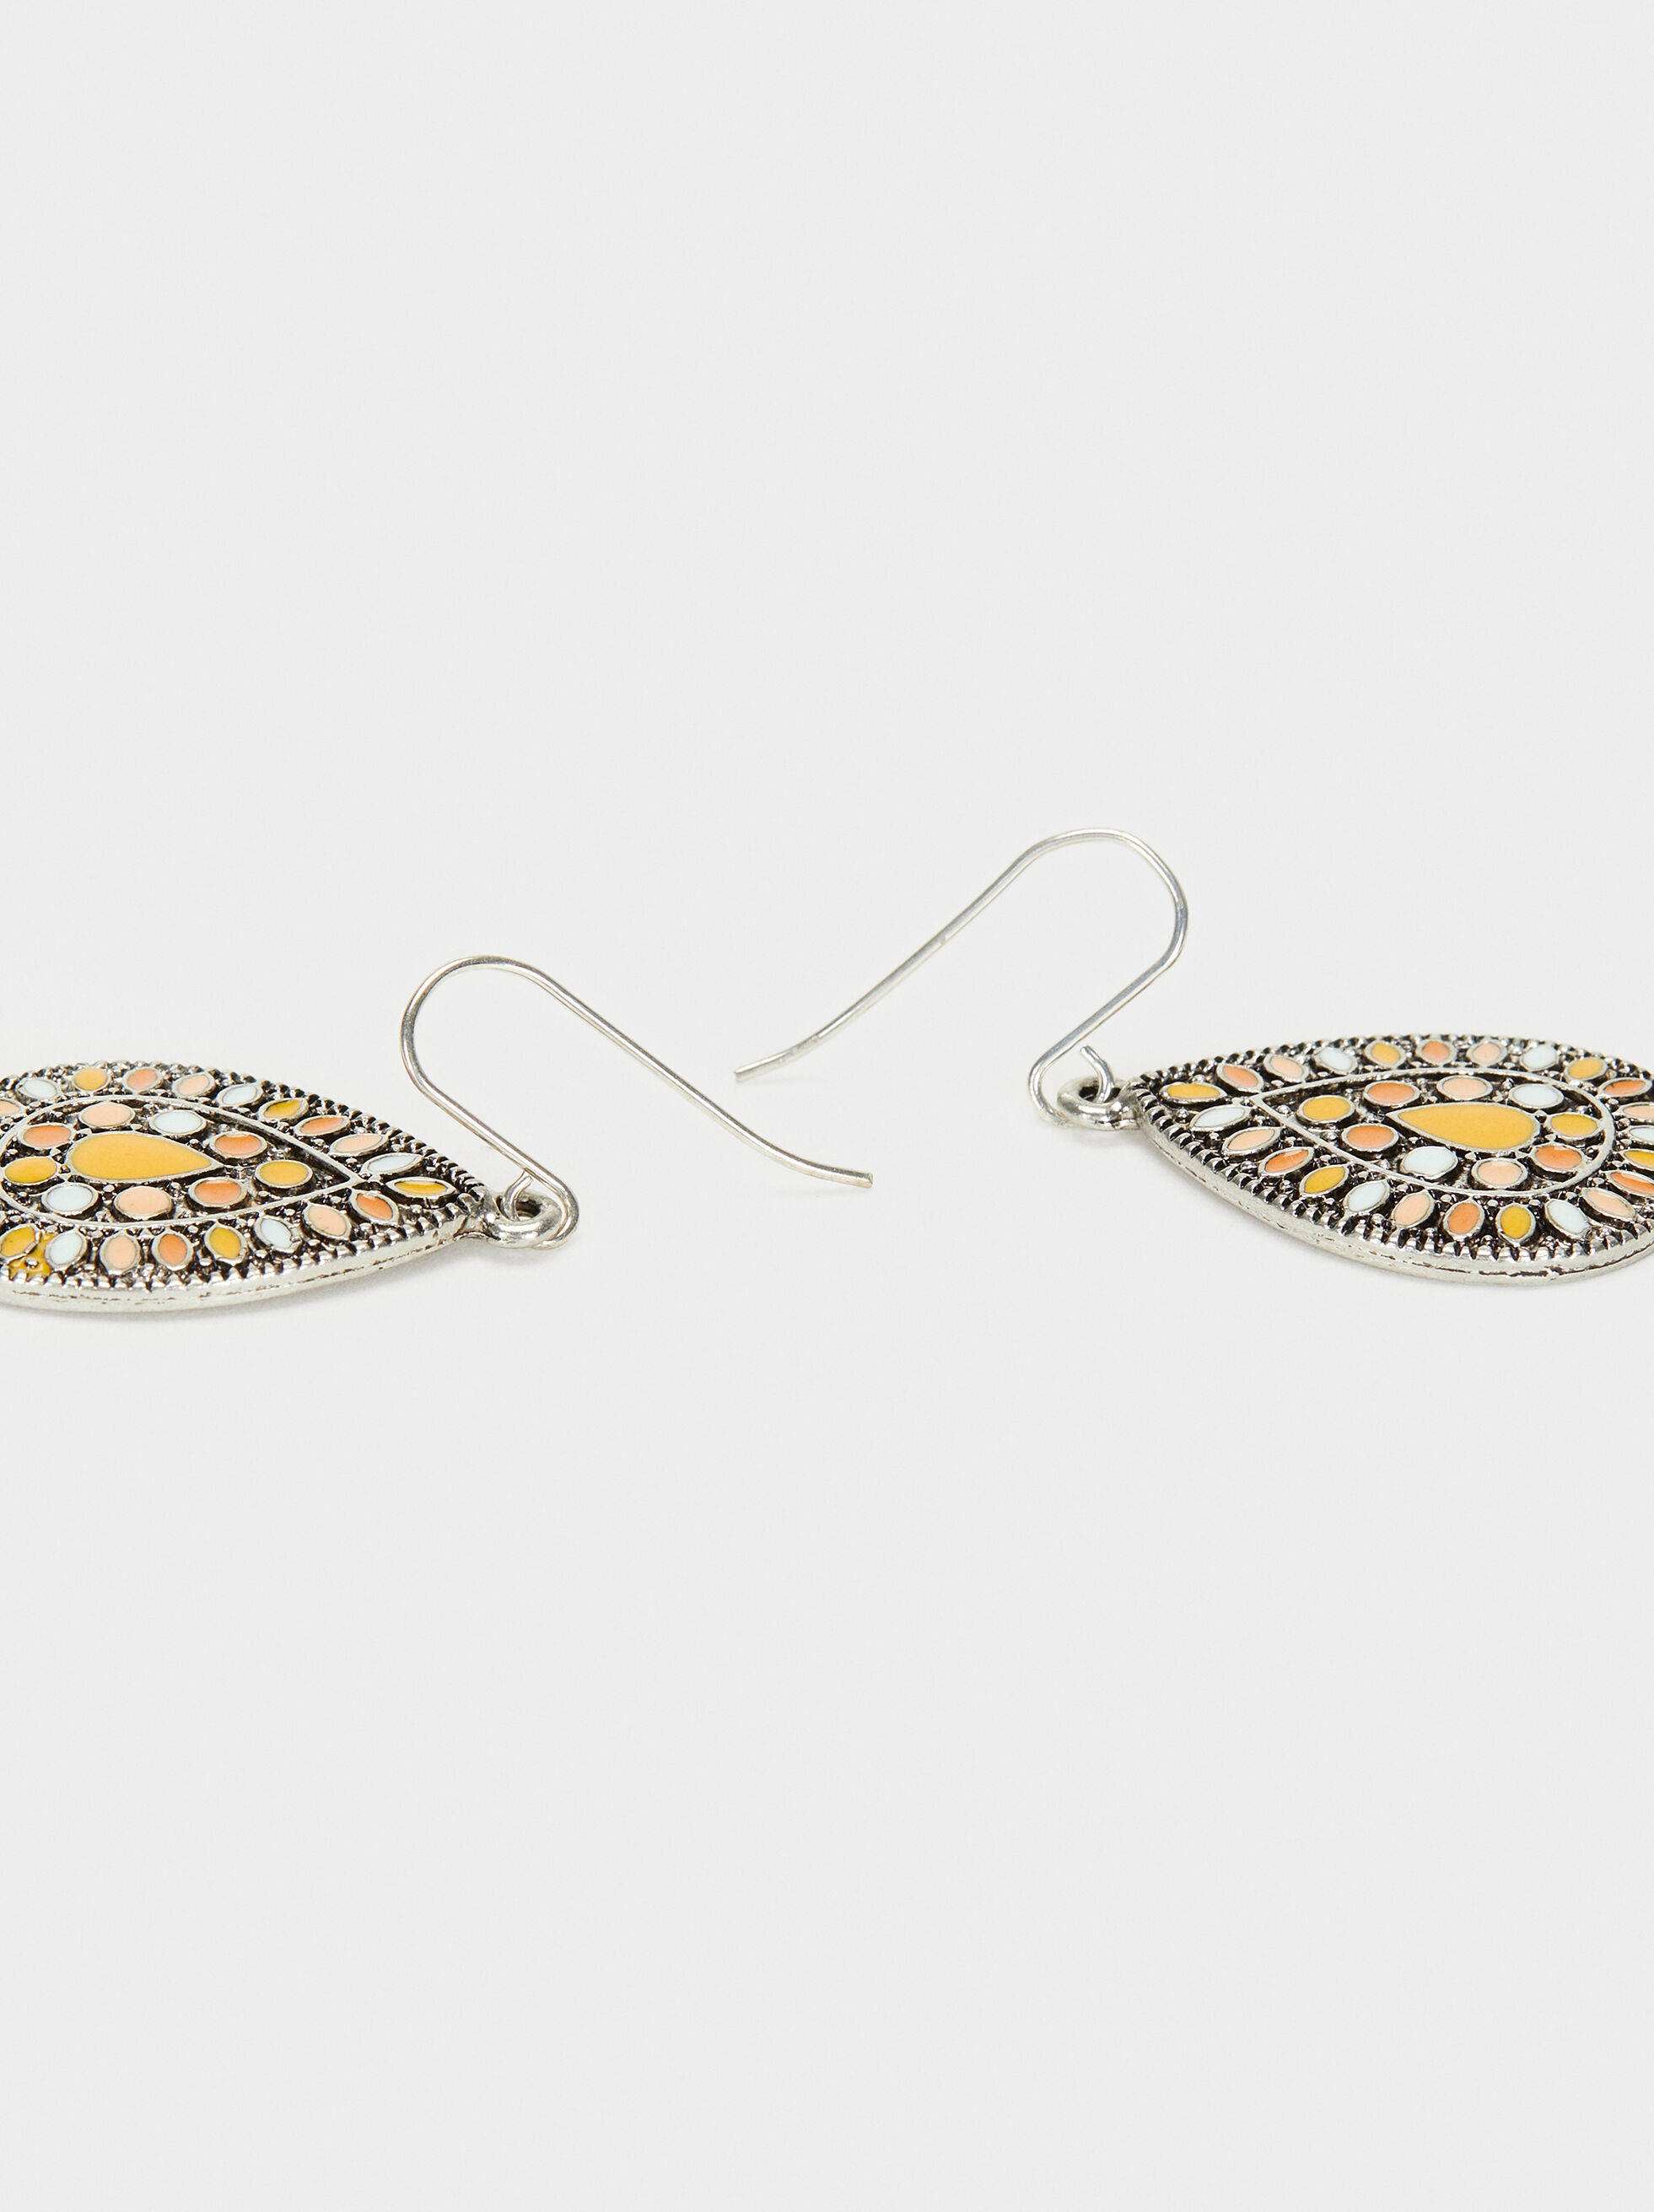 Star Valley Medium Earrings, Multicolor, hi-res